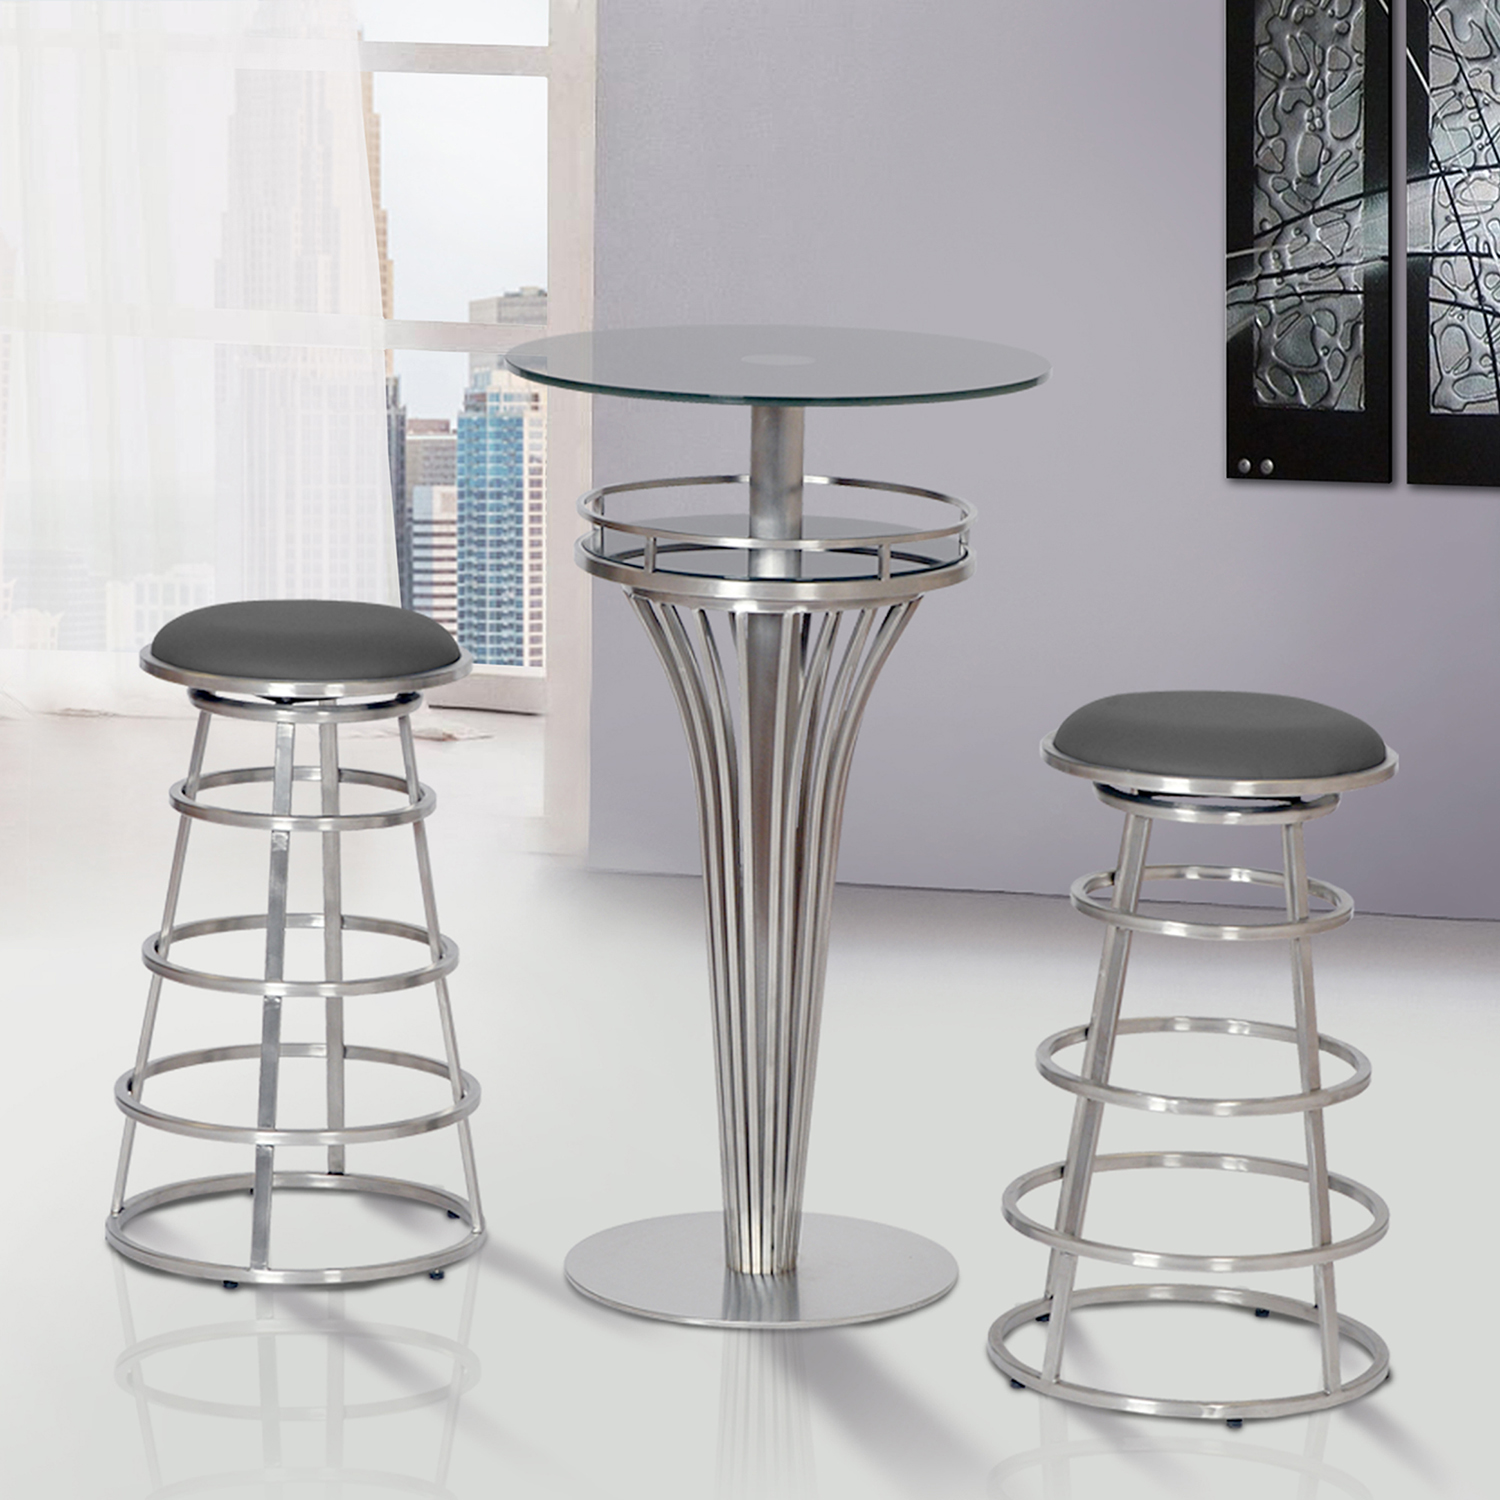 Yukon Contemporary Bar Table - Stainless Steel, Gray Glass - AL-LCYUBTB201TO